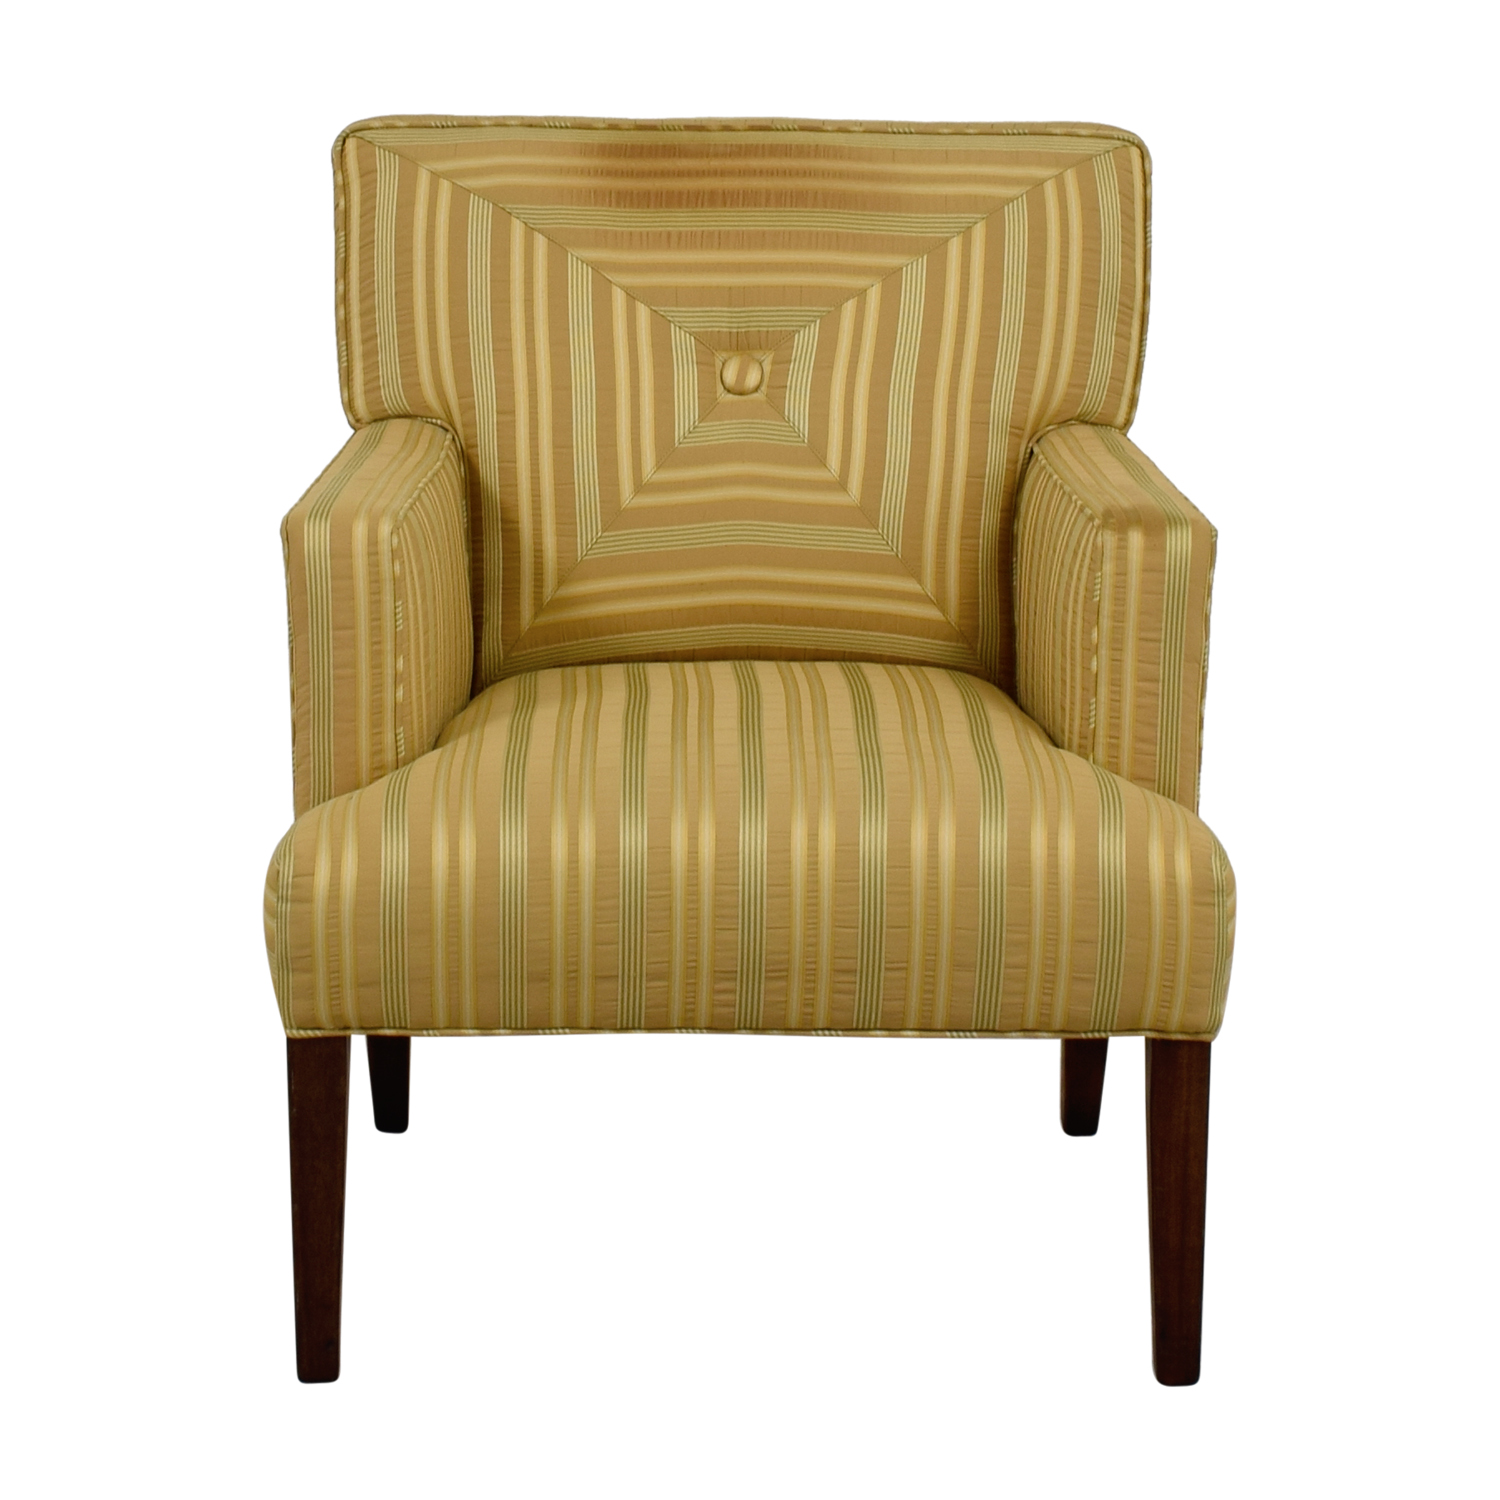 The Charles Stewart Company Gold Beige and Yellow Stripe Accent Chair / Sofas